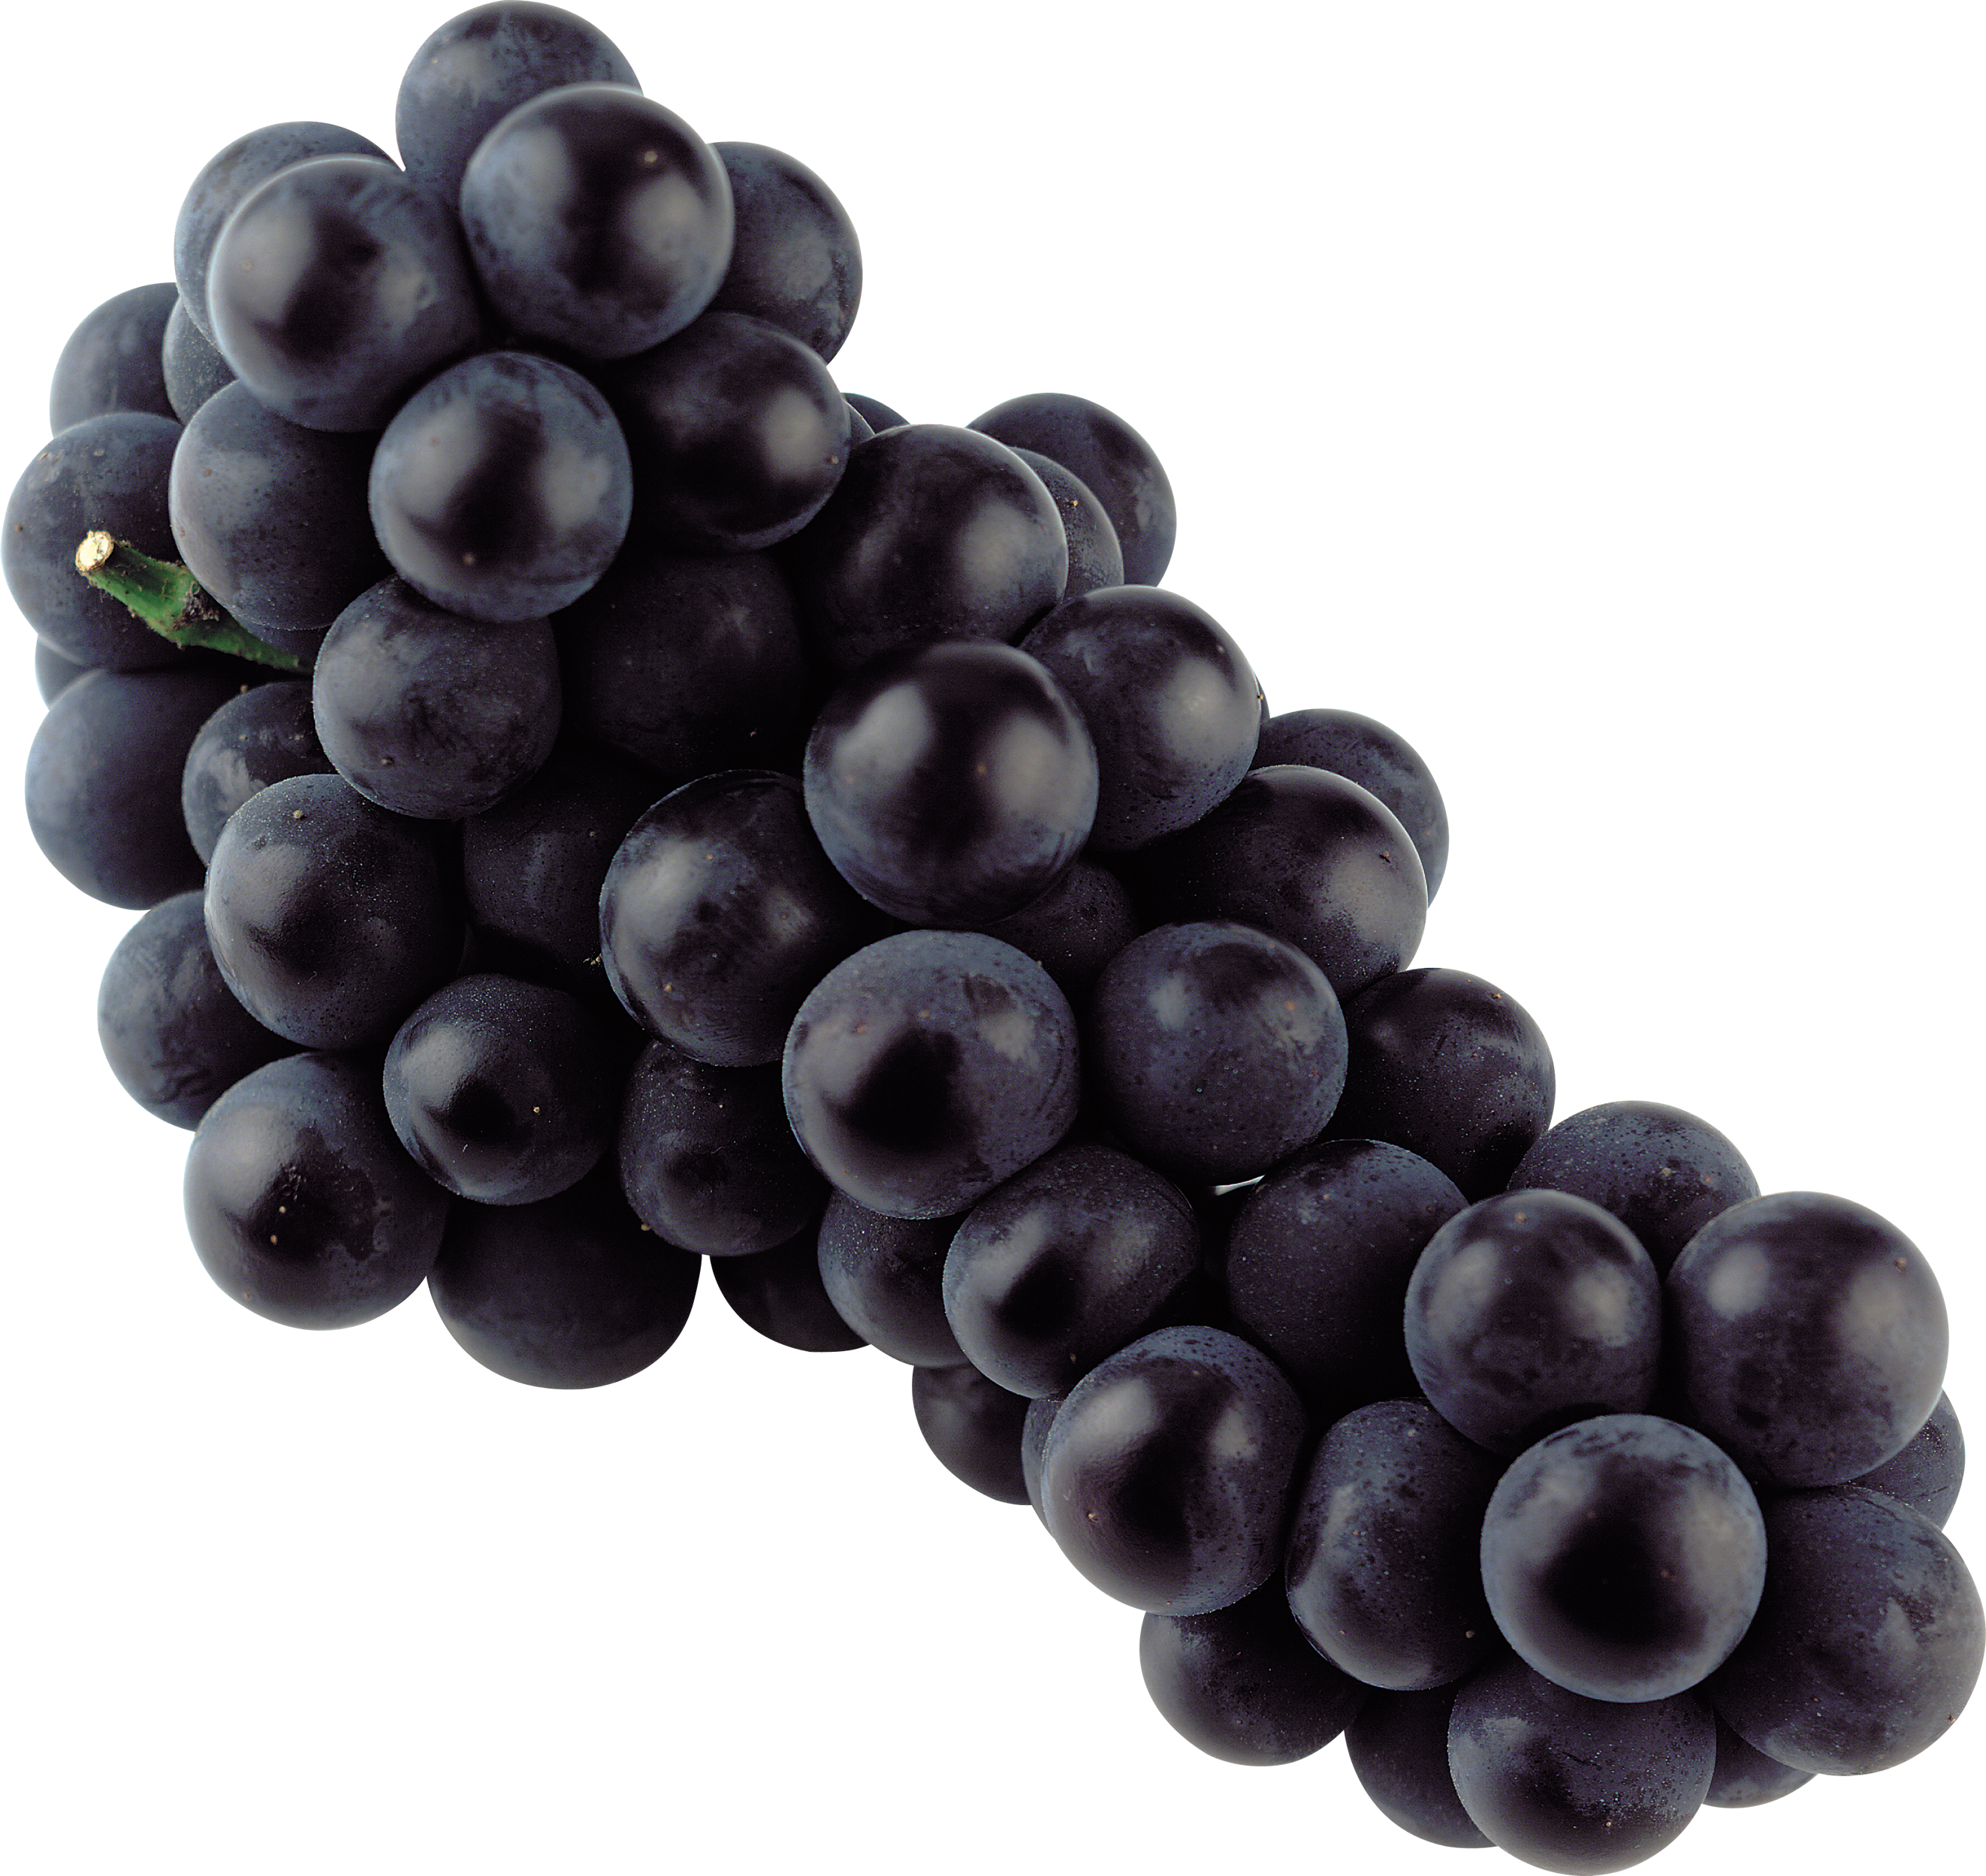 Transparent grapes black. Png image purepng free